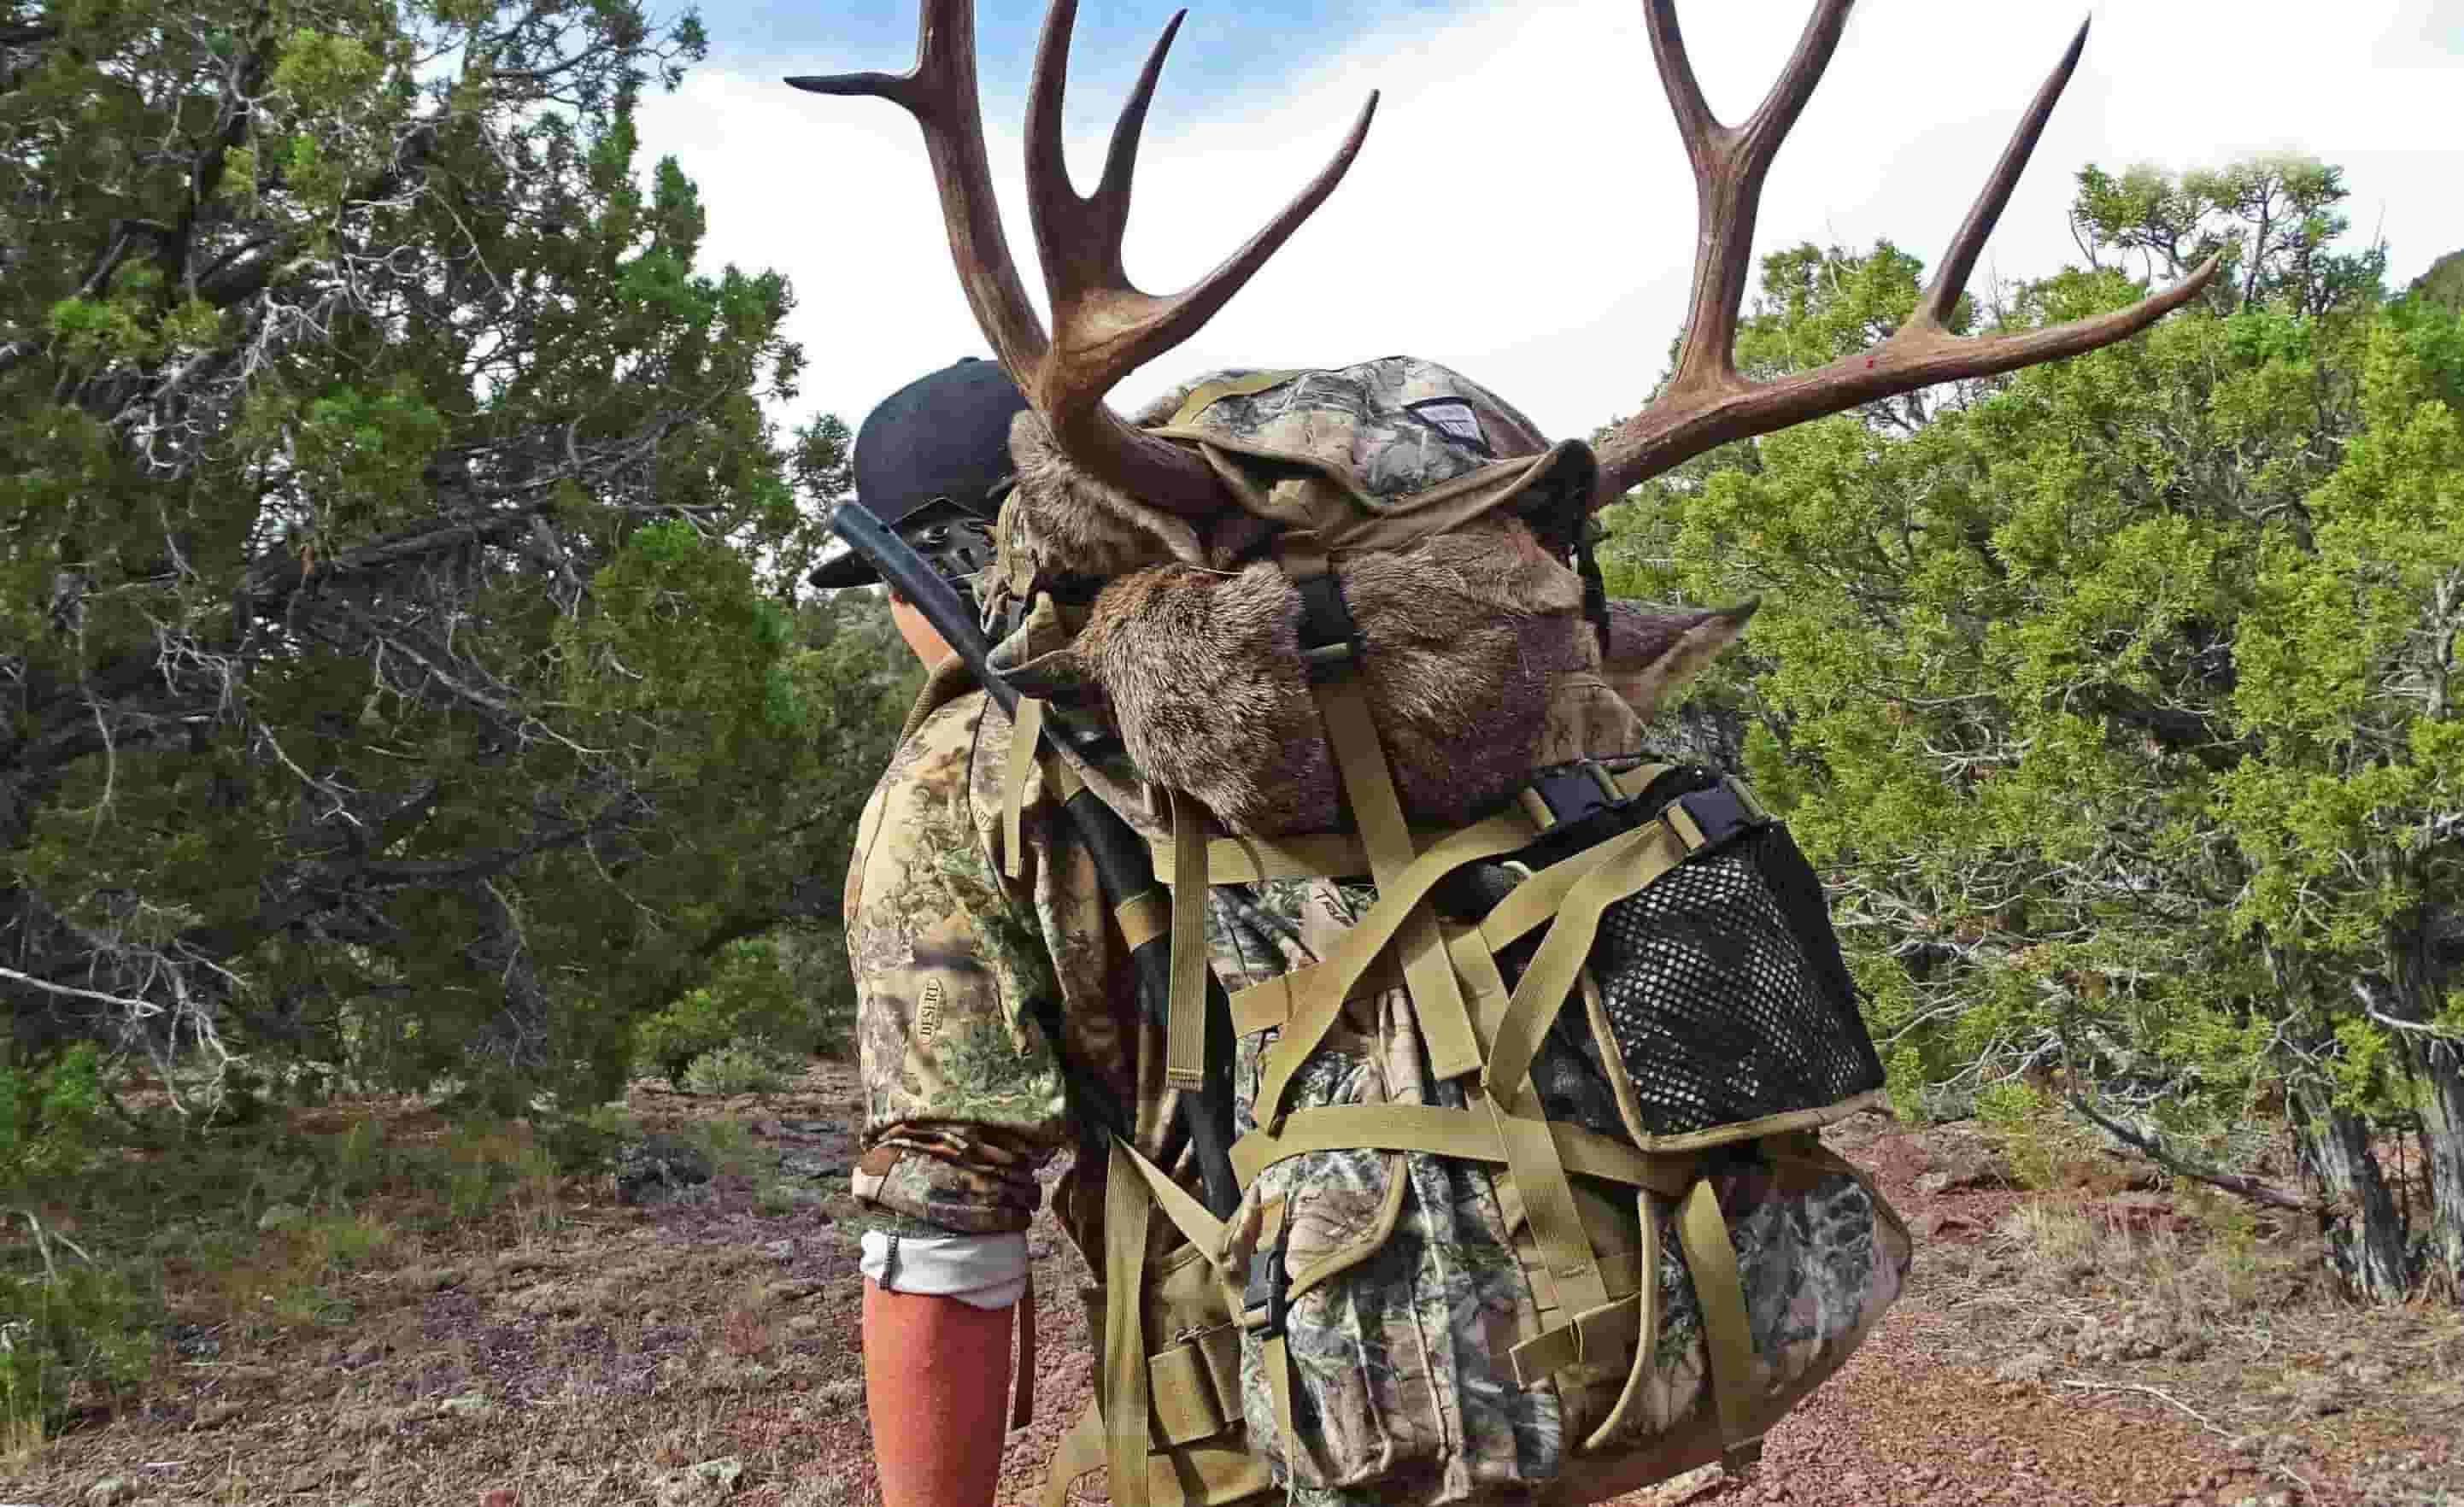 Best Hunting Pack for Hauling Meat in 2018 - Buying Guide & Top Reviews